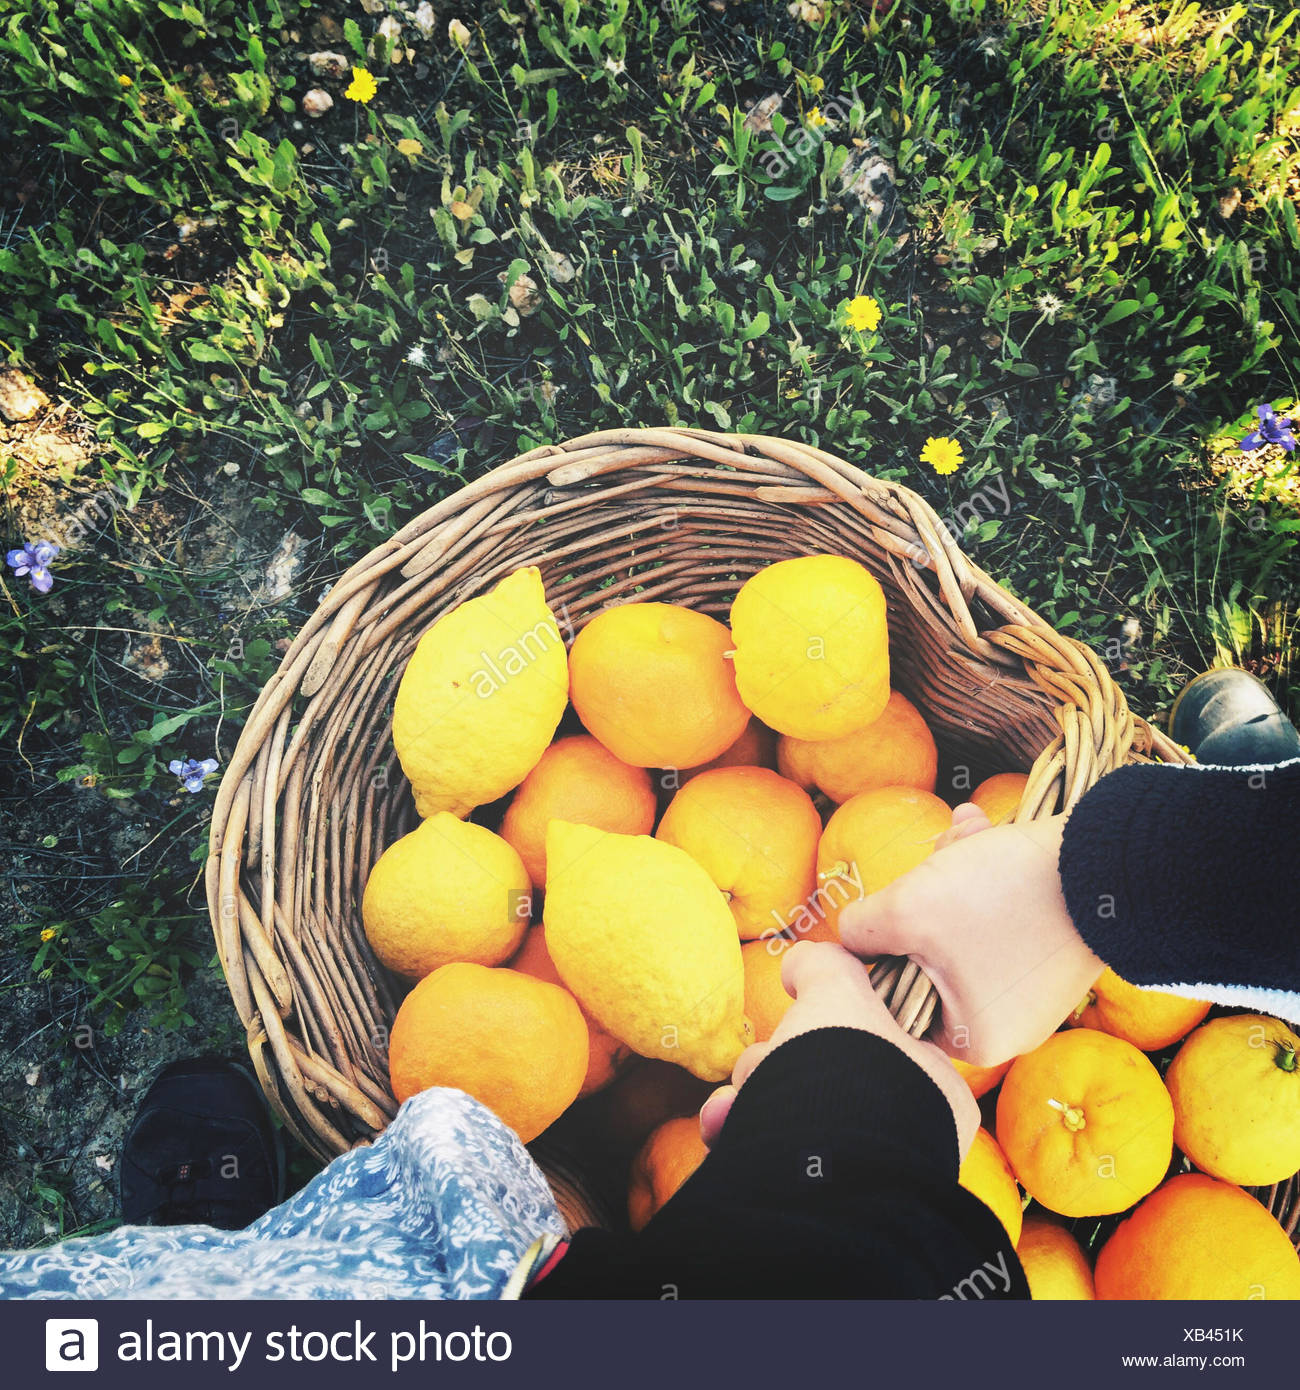 Elevated View Of Hands Holding Basket With Lemons And Oranges - Stock Image